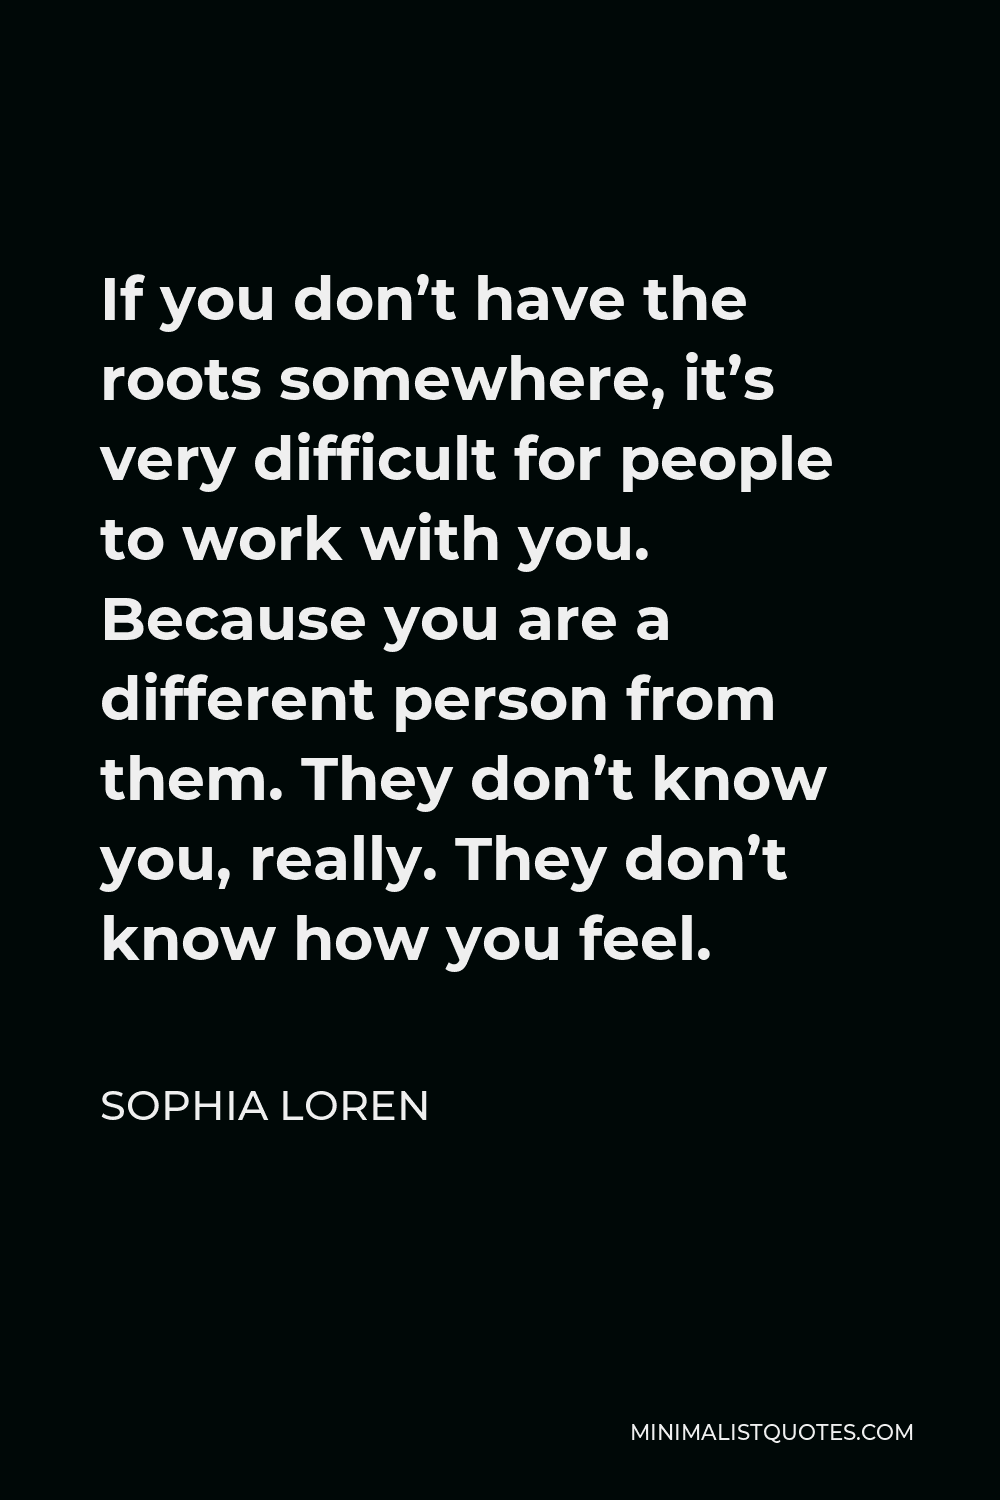 Sophia Loren Quote - If you don't have the roots somewhere, it's very difficult for people to work with you. Because you are a different person from them. They don't know you, really. They don't know how you feel.